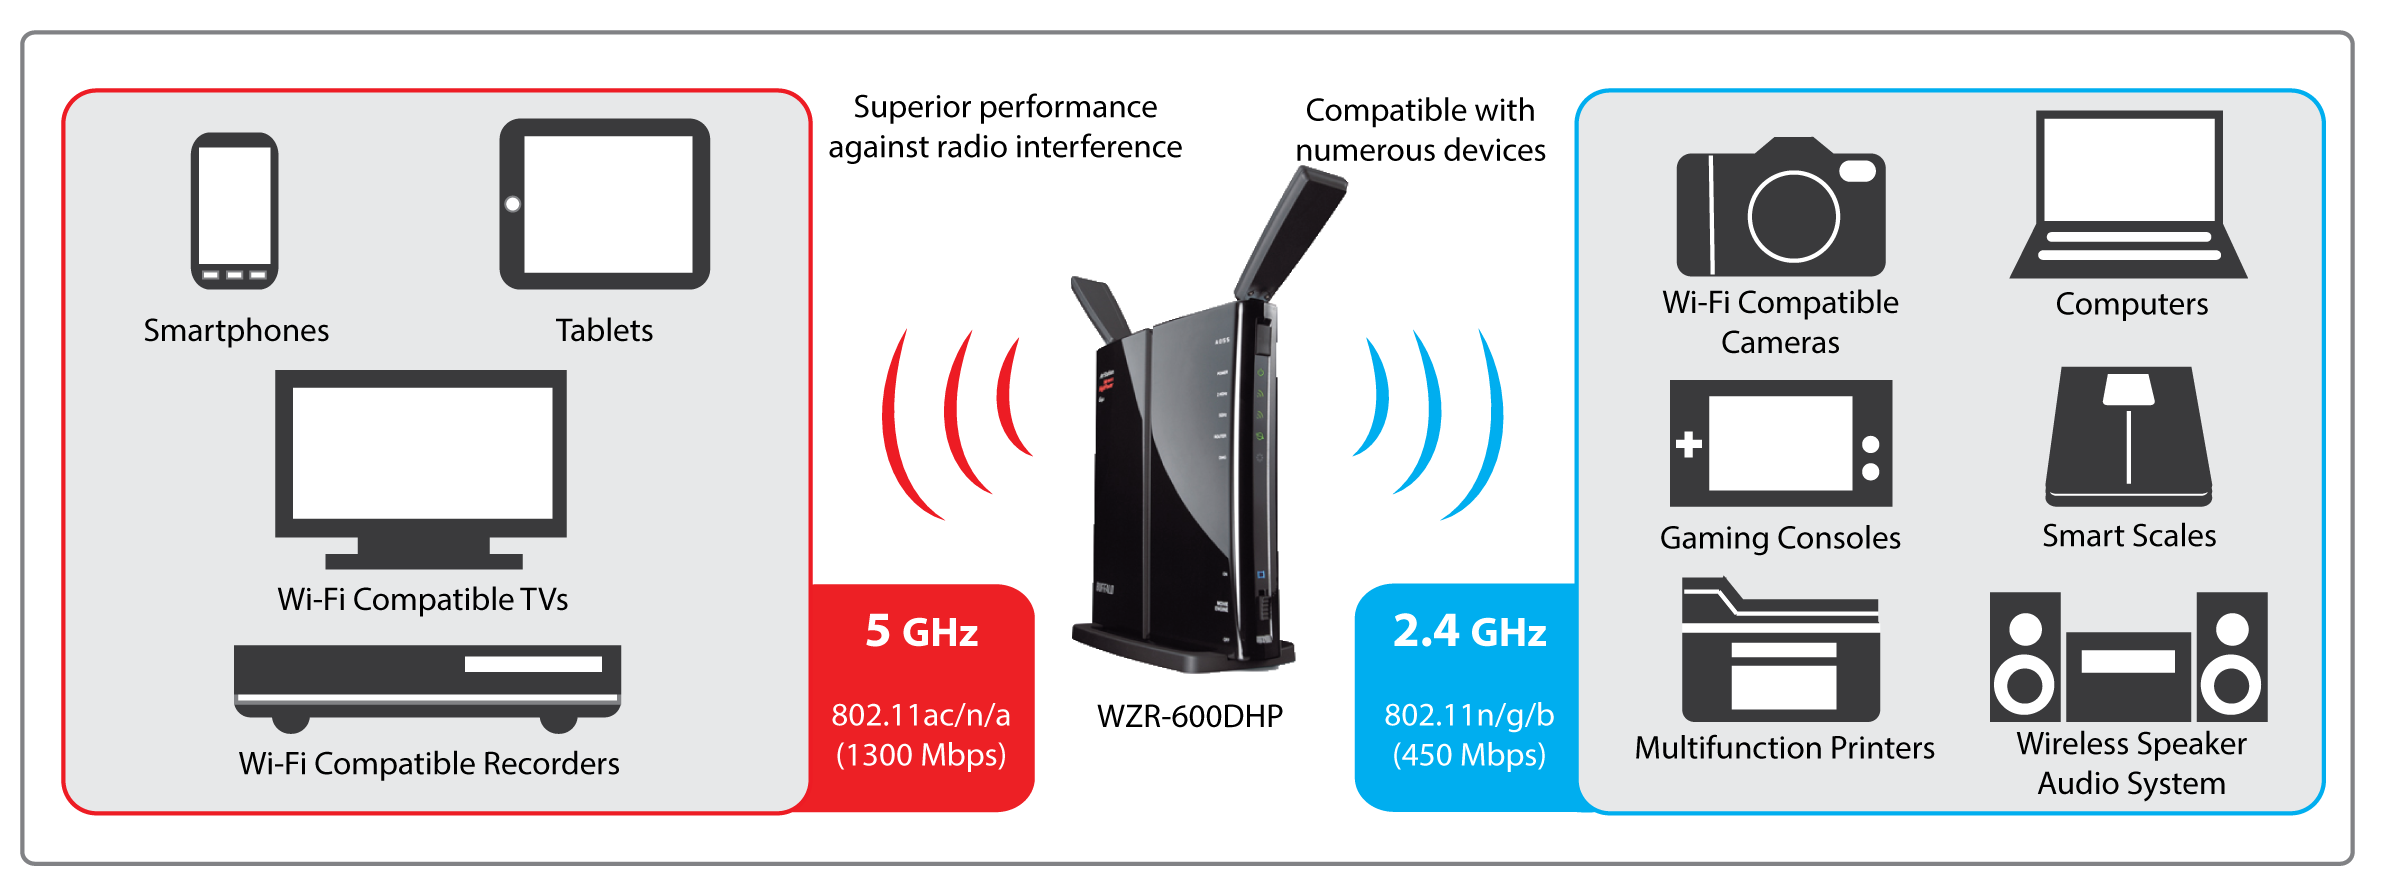 airstation highpower n600 dual band